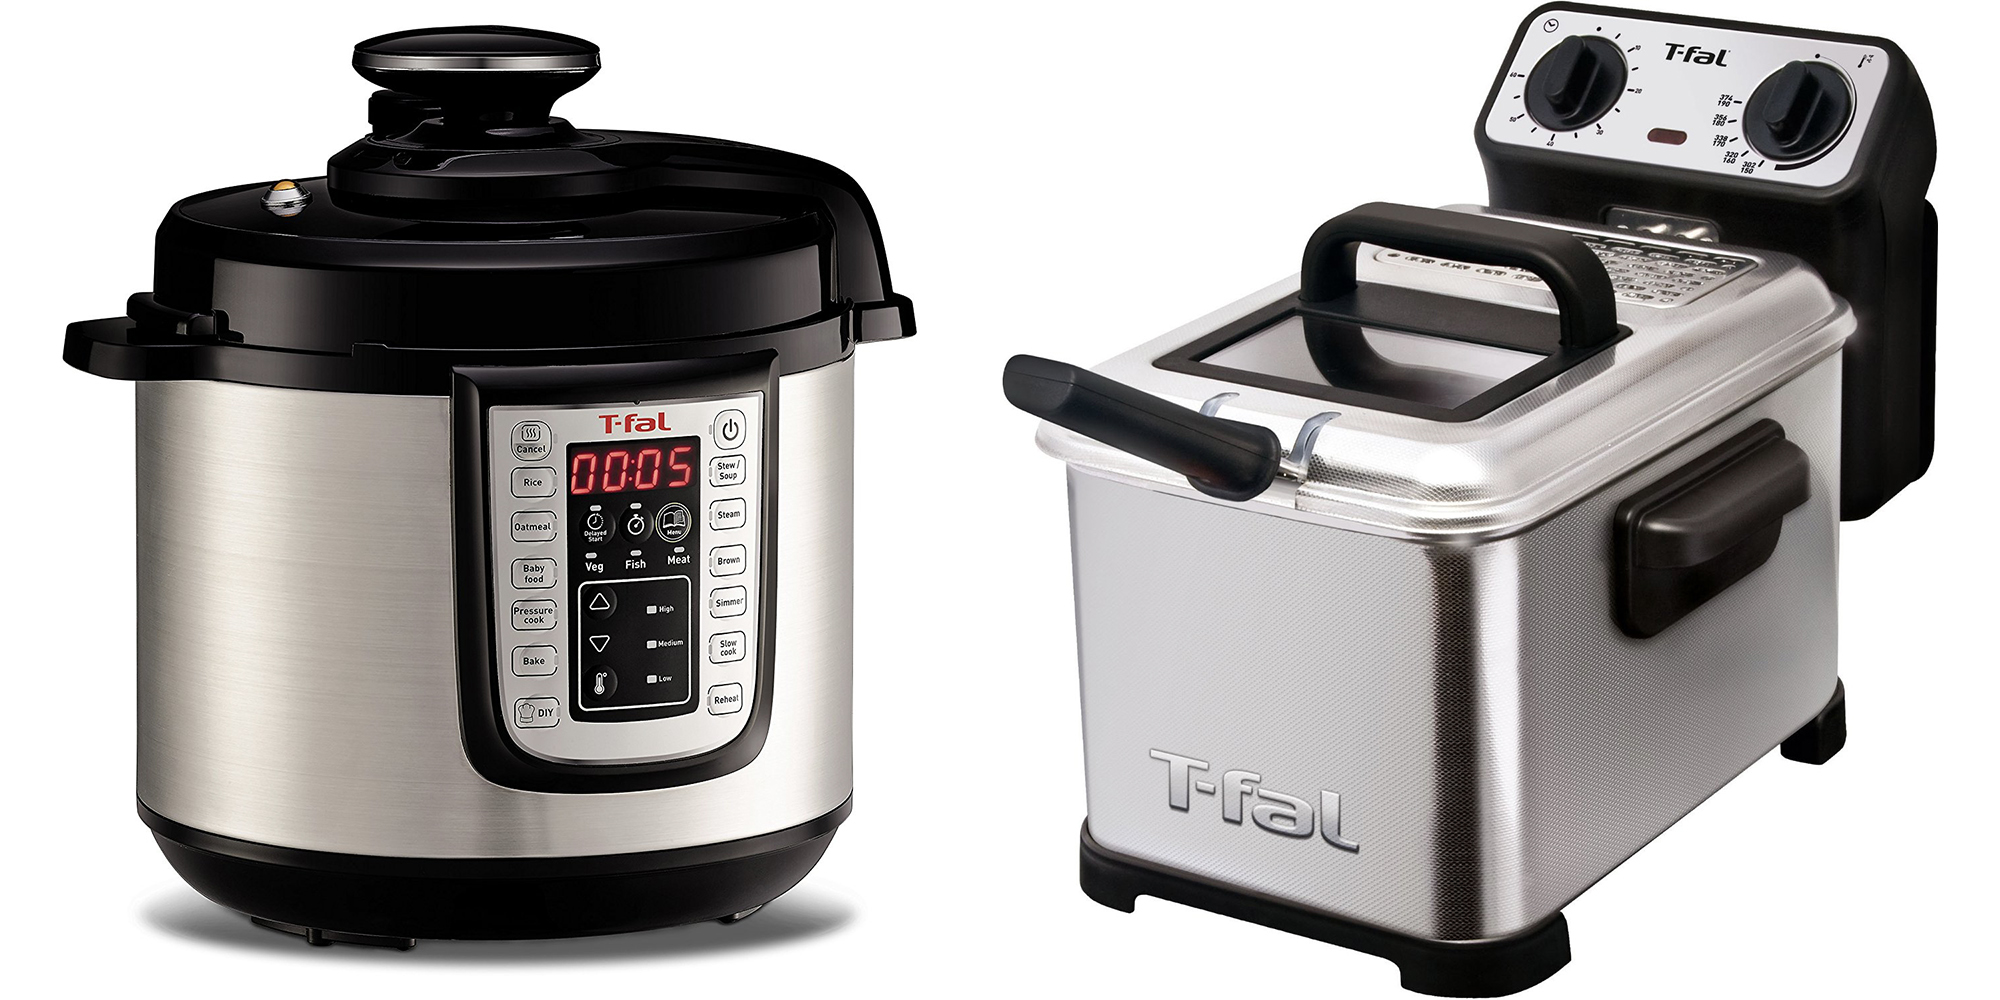 Today's Amazon Gold includes up to 35% off T-Fal kitchen accessories, from $25